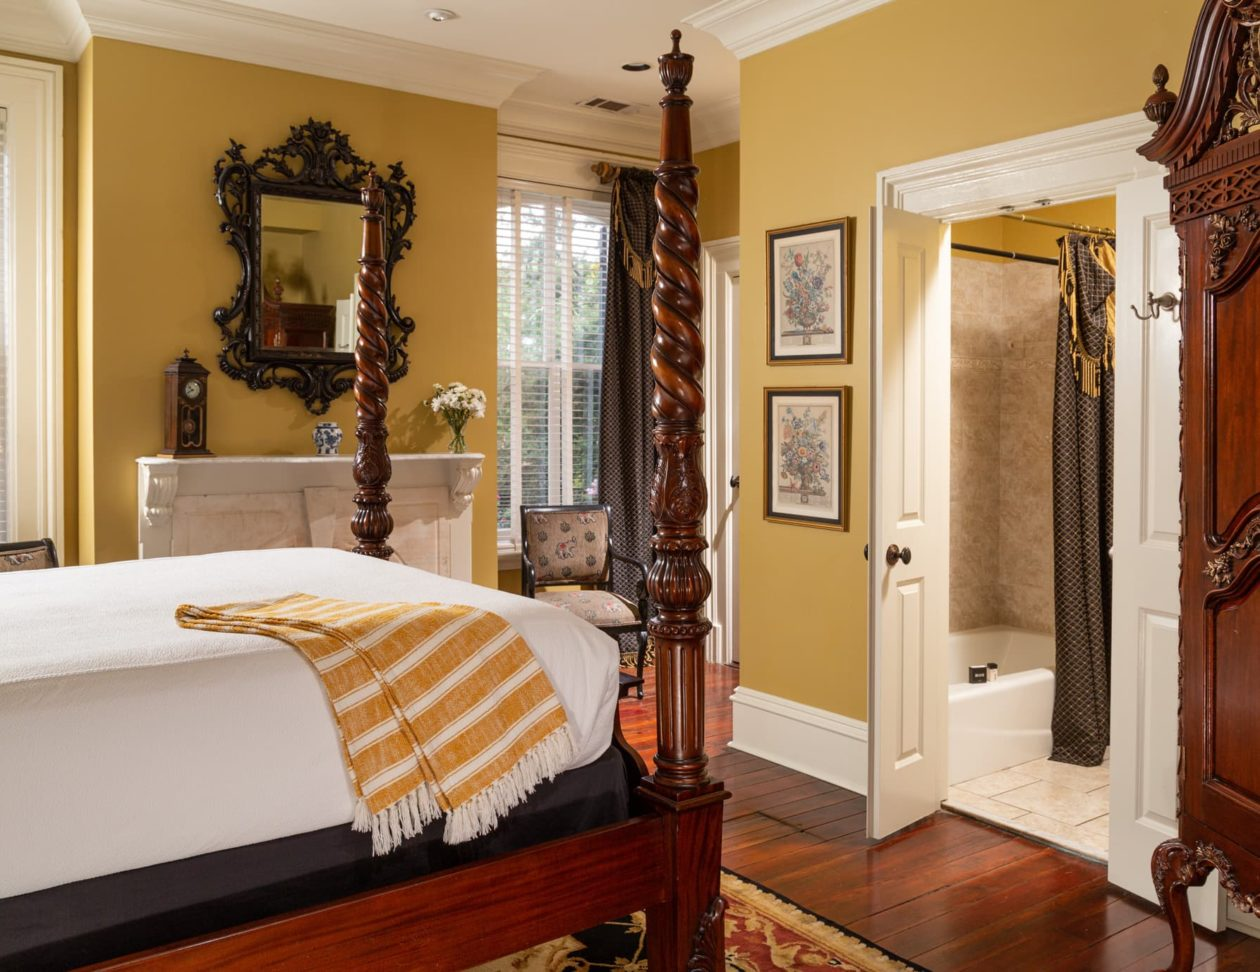 A queen bed in a room with ample light with a mahogany gilded Chippendale armoire